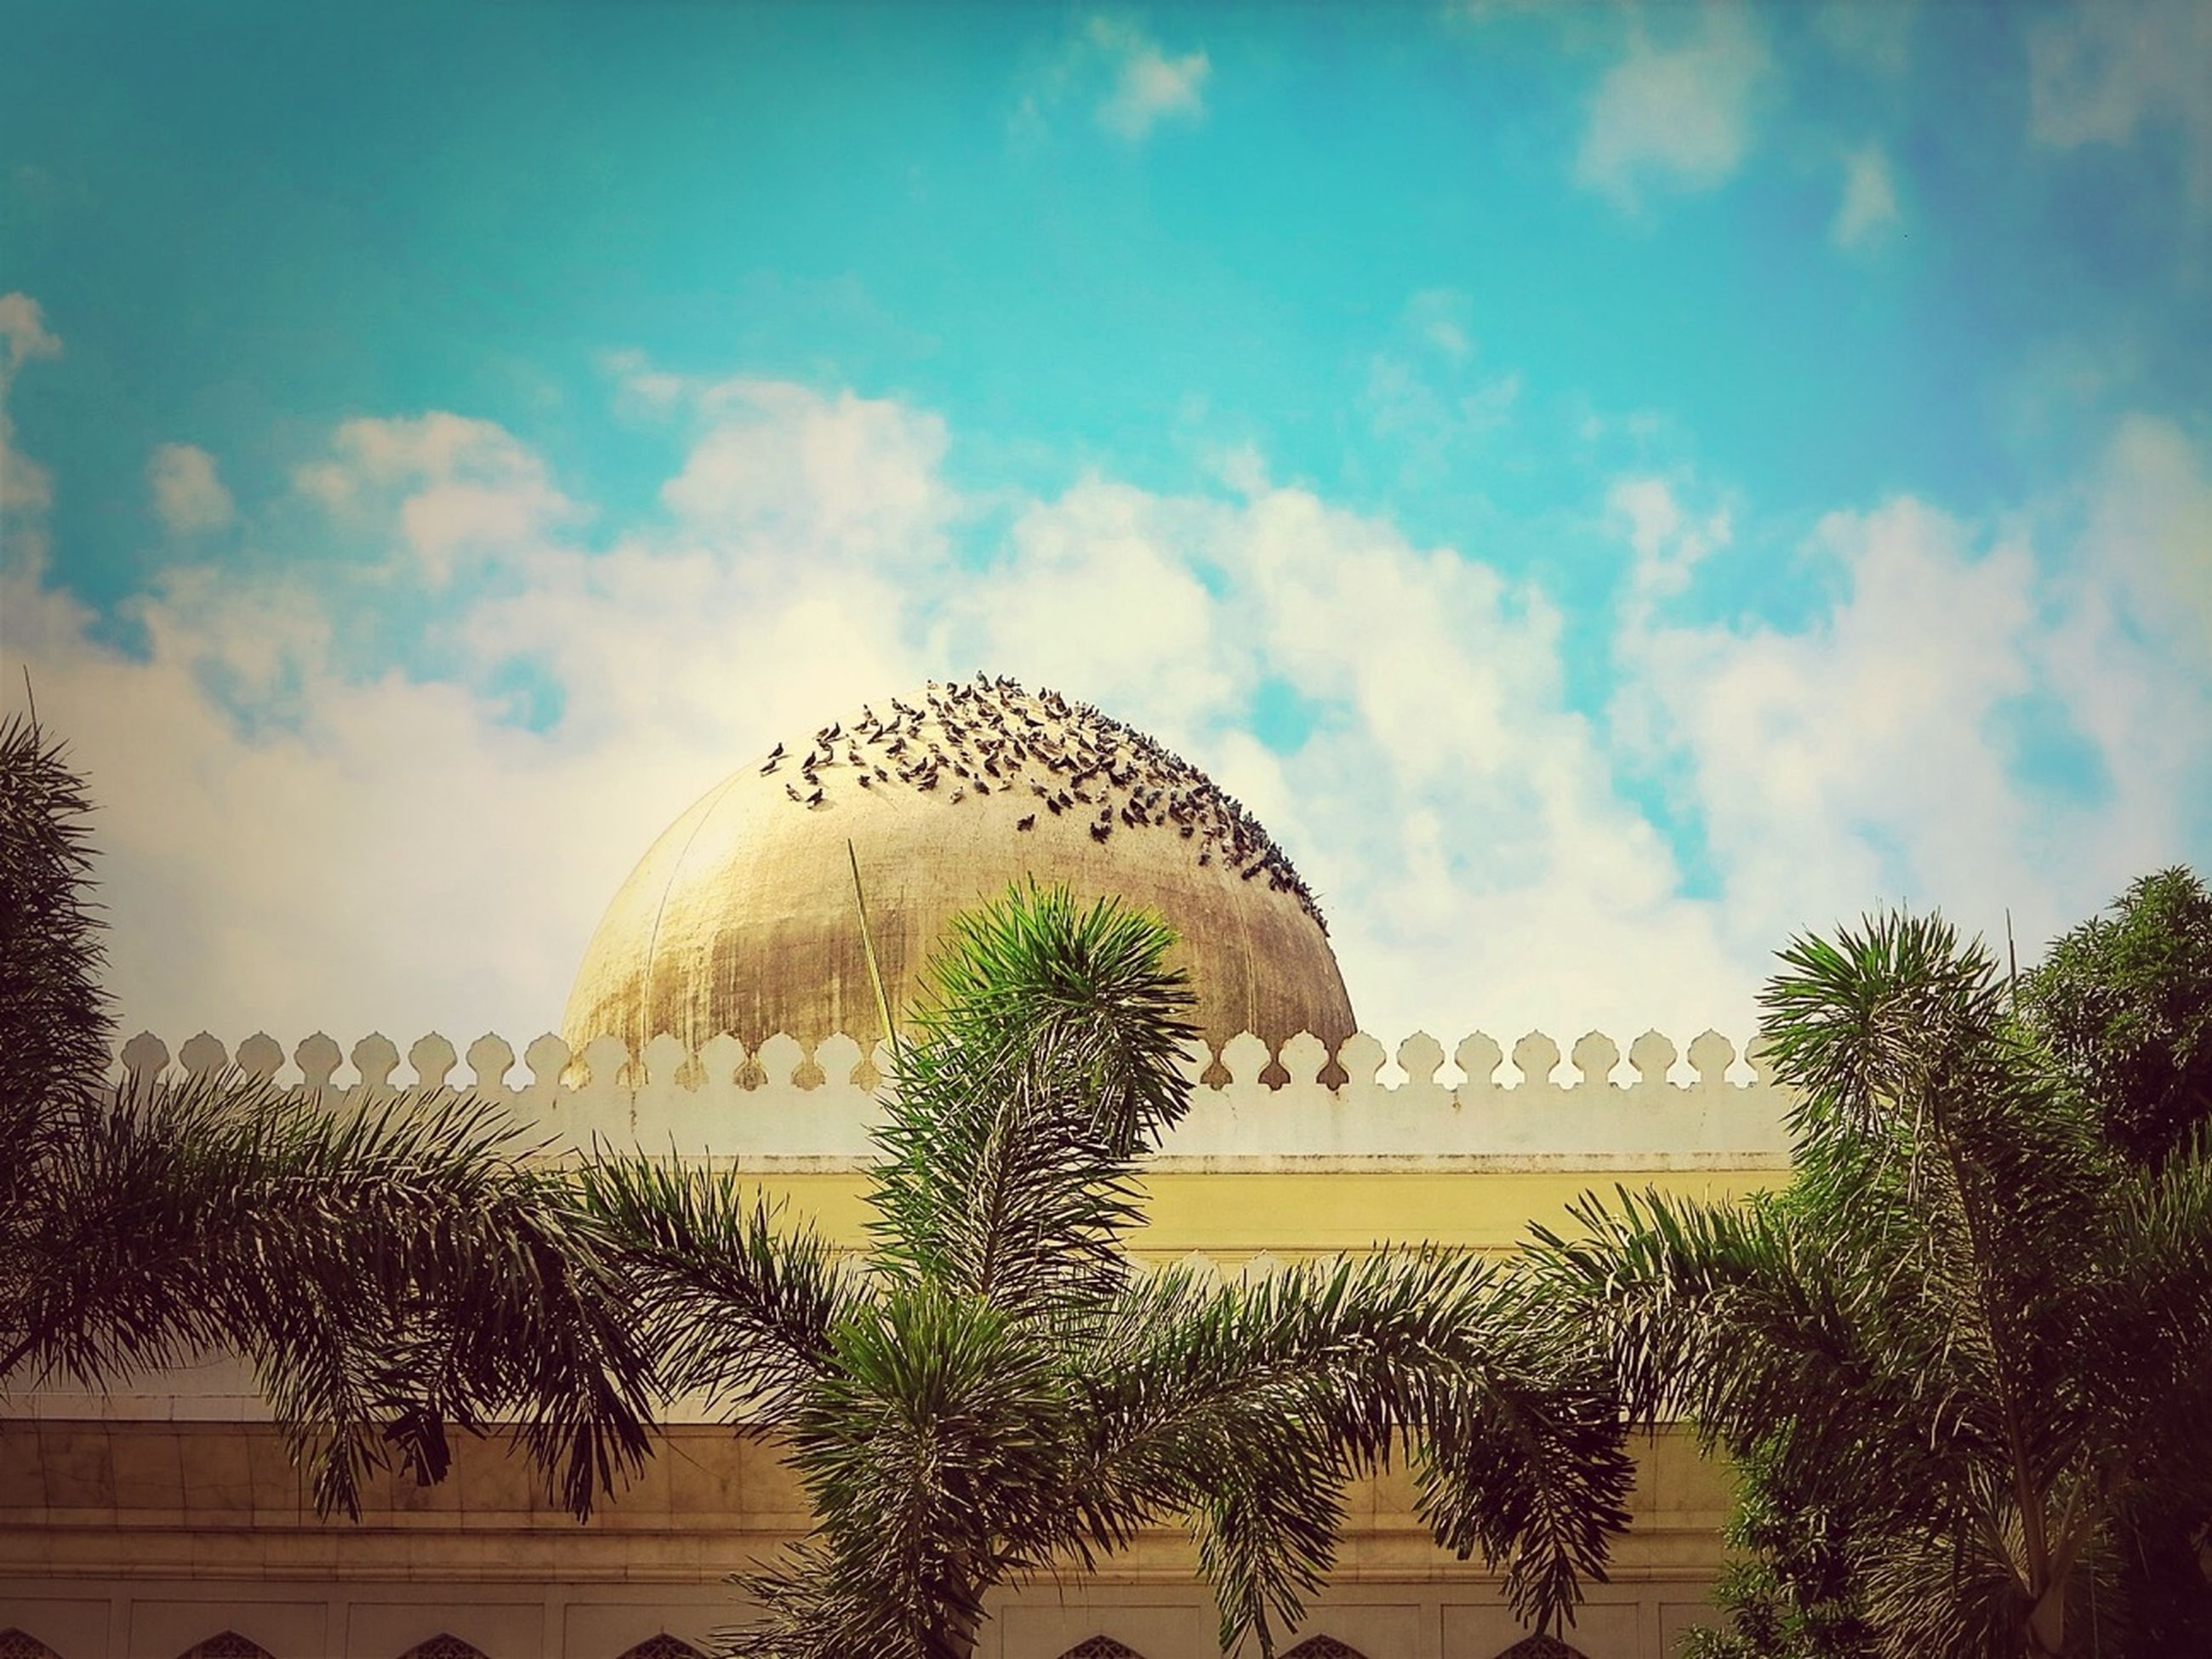 architecture, built structure, sky, tree, cloud - sky, building exterior, cloud, arch, plant, growth, cloudy, palm tree, low angle view, nature, connection, day, water, outdoors, bridge - man made structure, no people